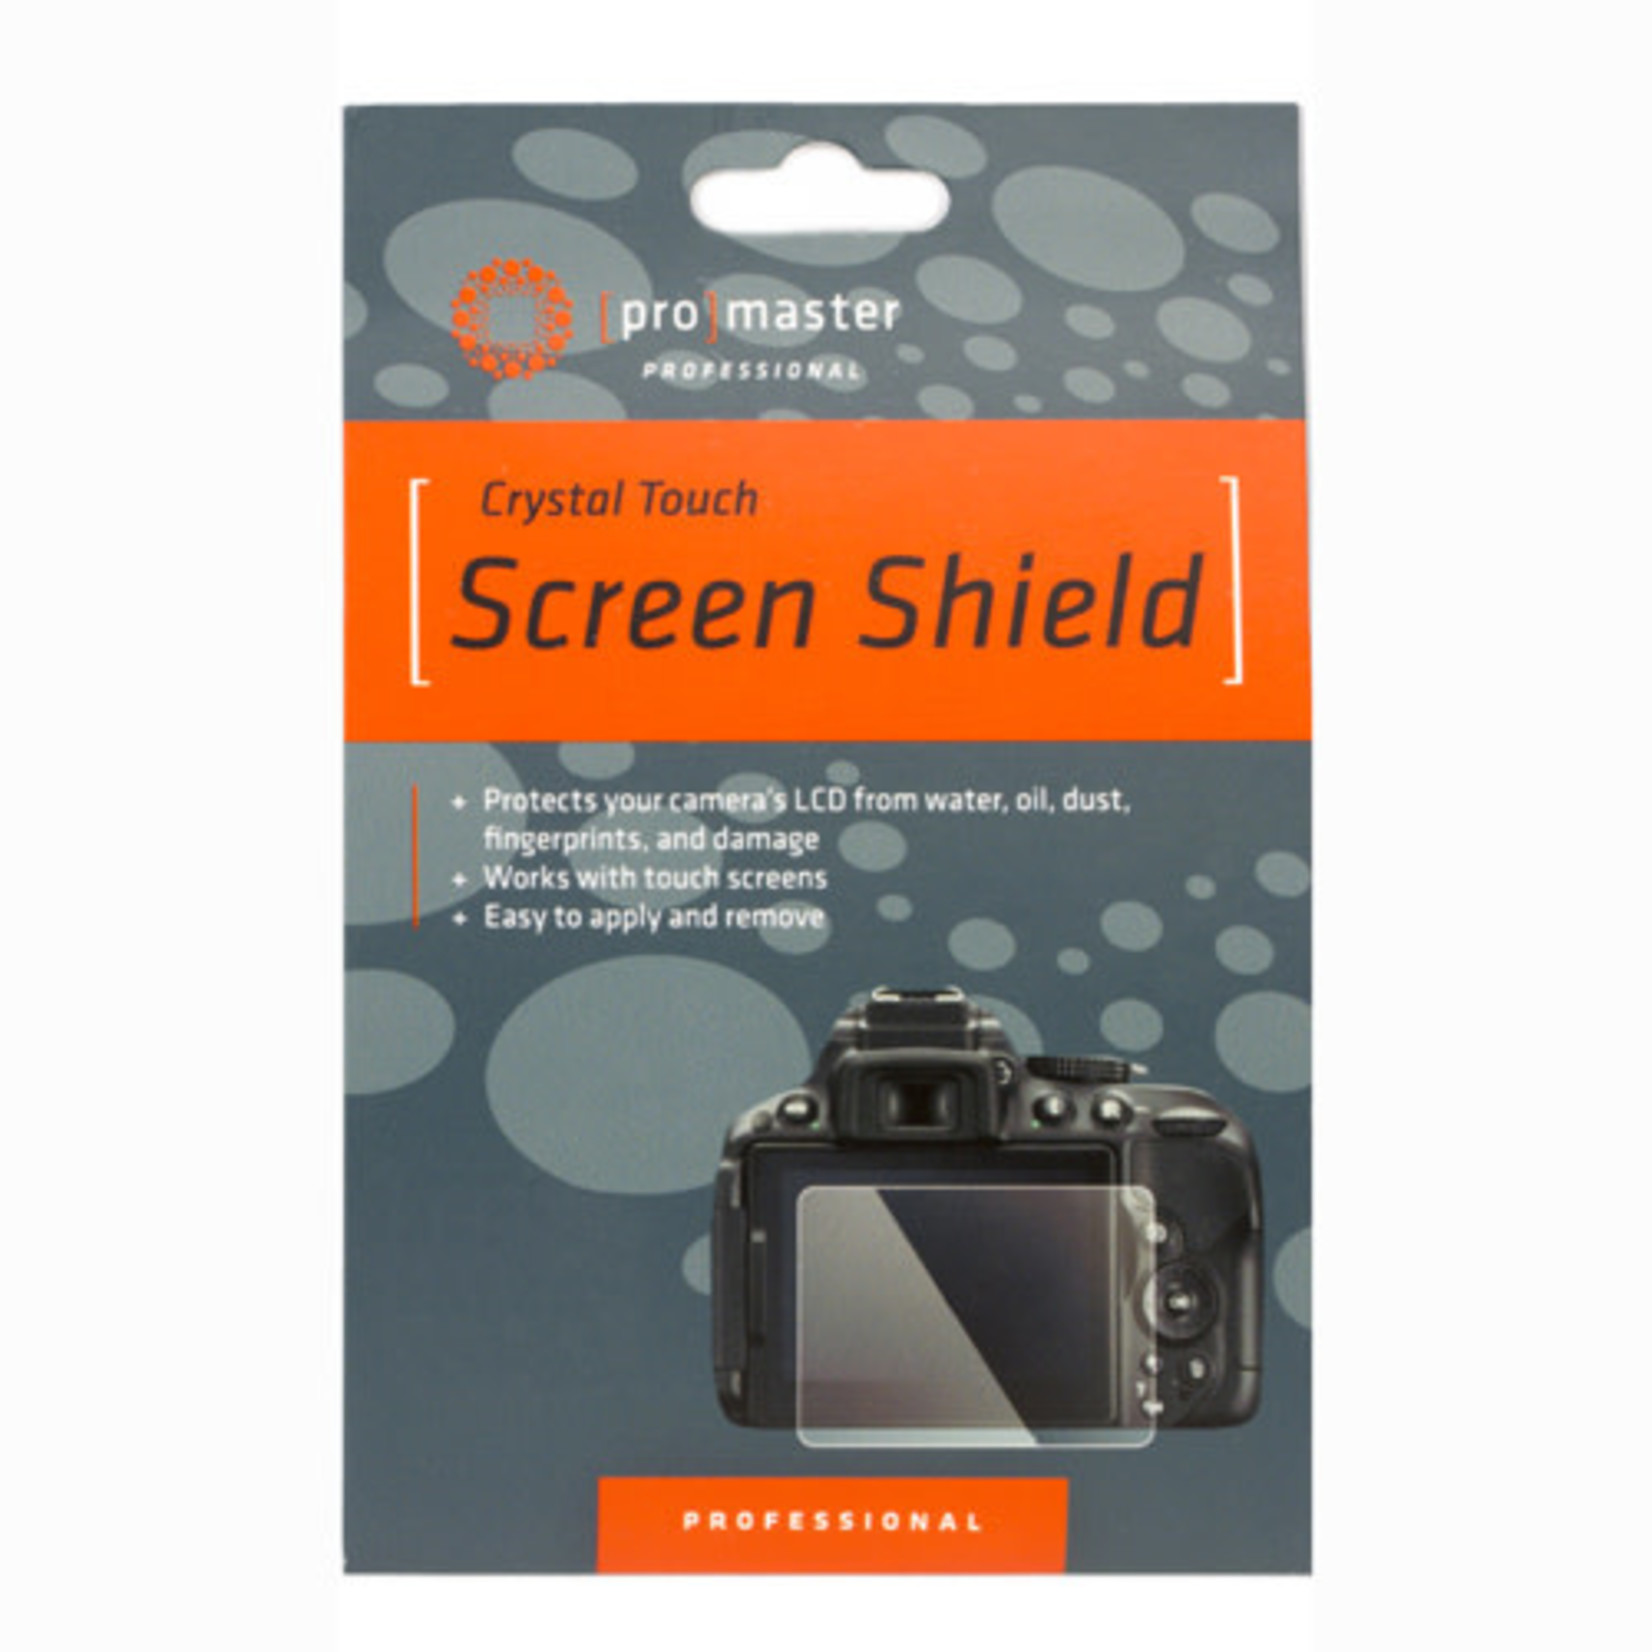 ProMaster Crystal Touch Screen Shield - Sony A6300, A6000